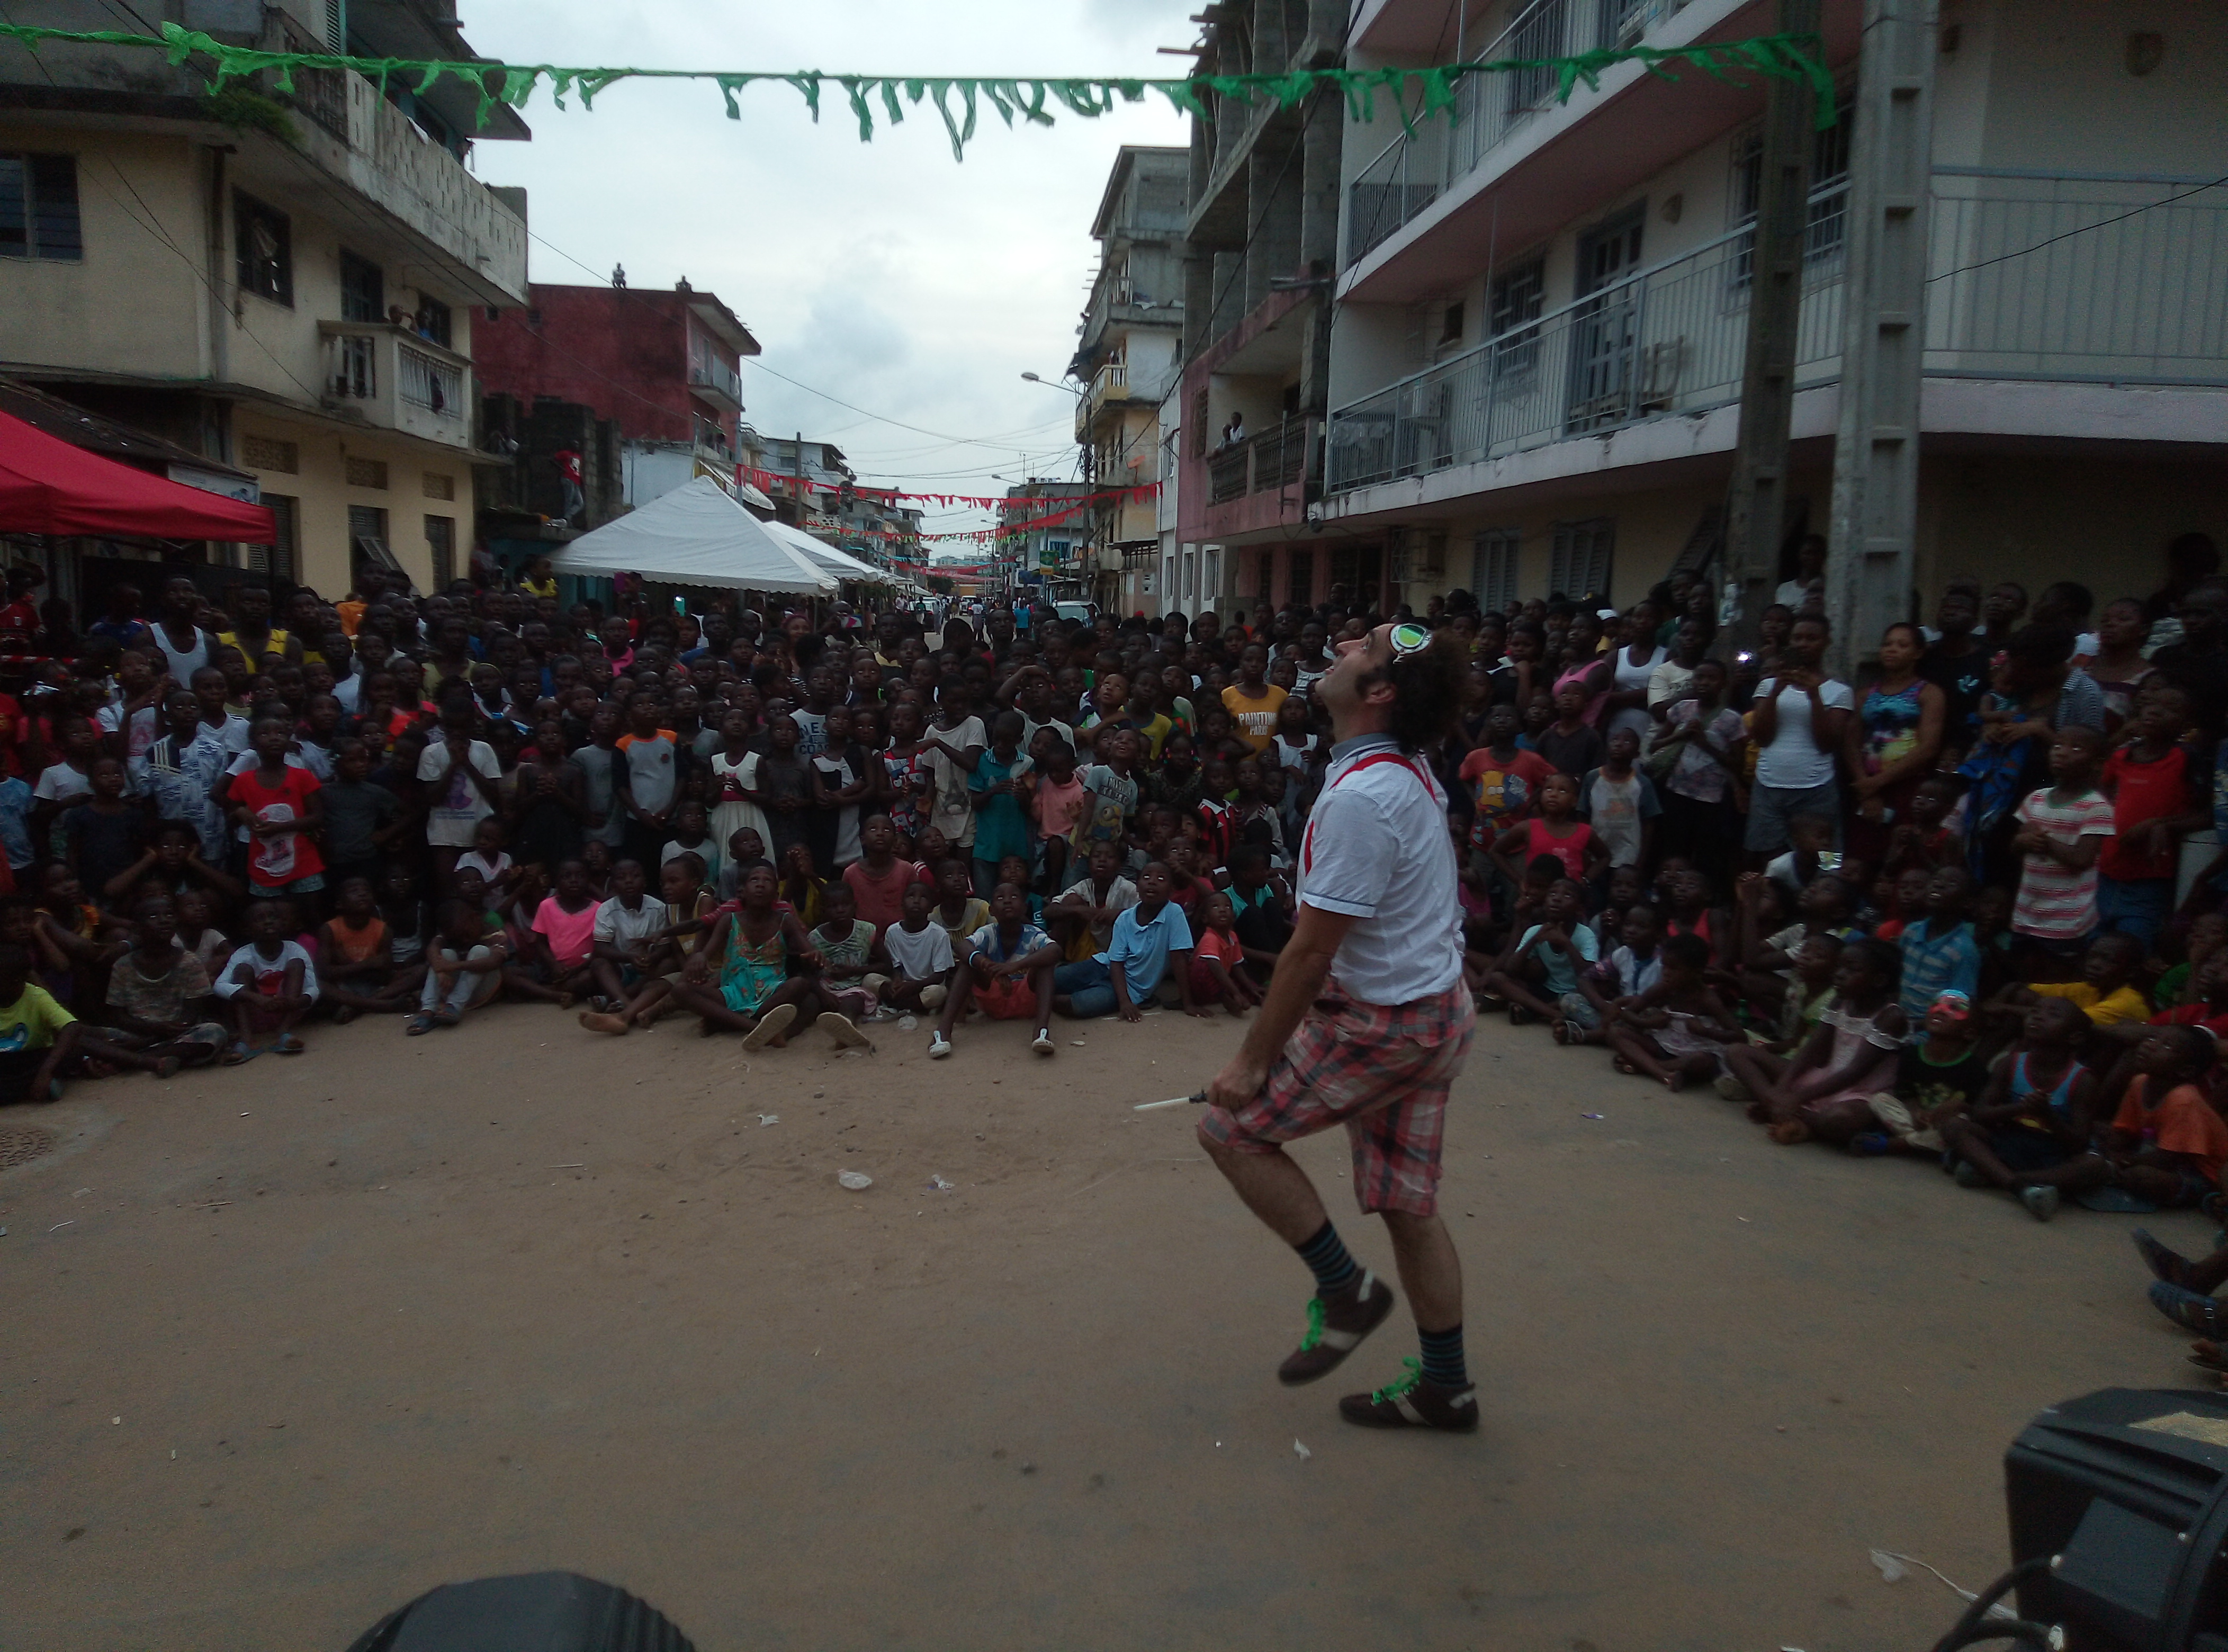 Spectacle diabolo Saltimbanque Festival d'art de rue international Abidjan Blokosso 2019